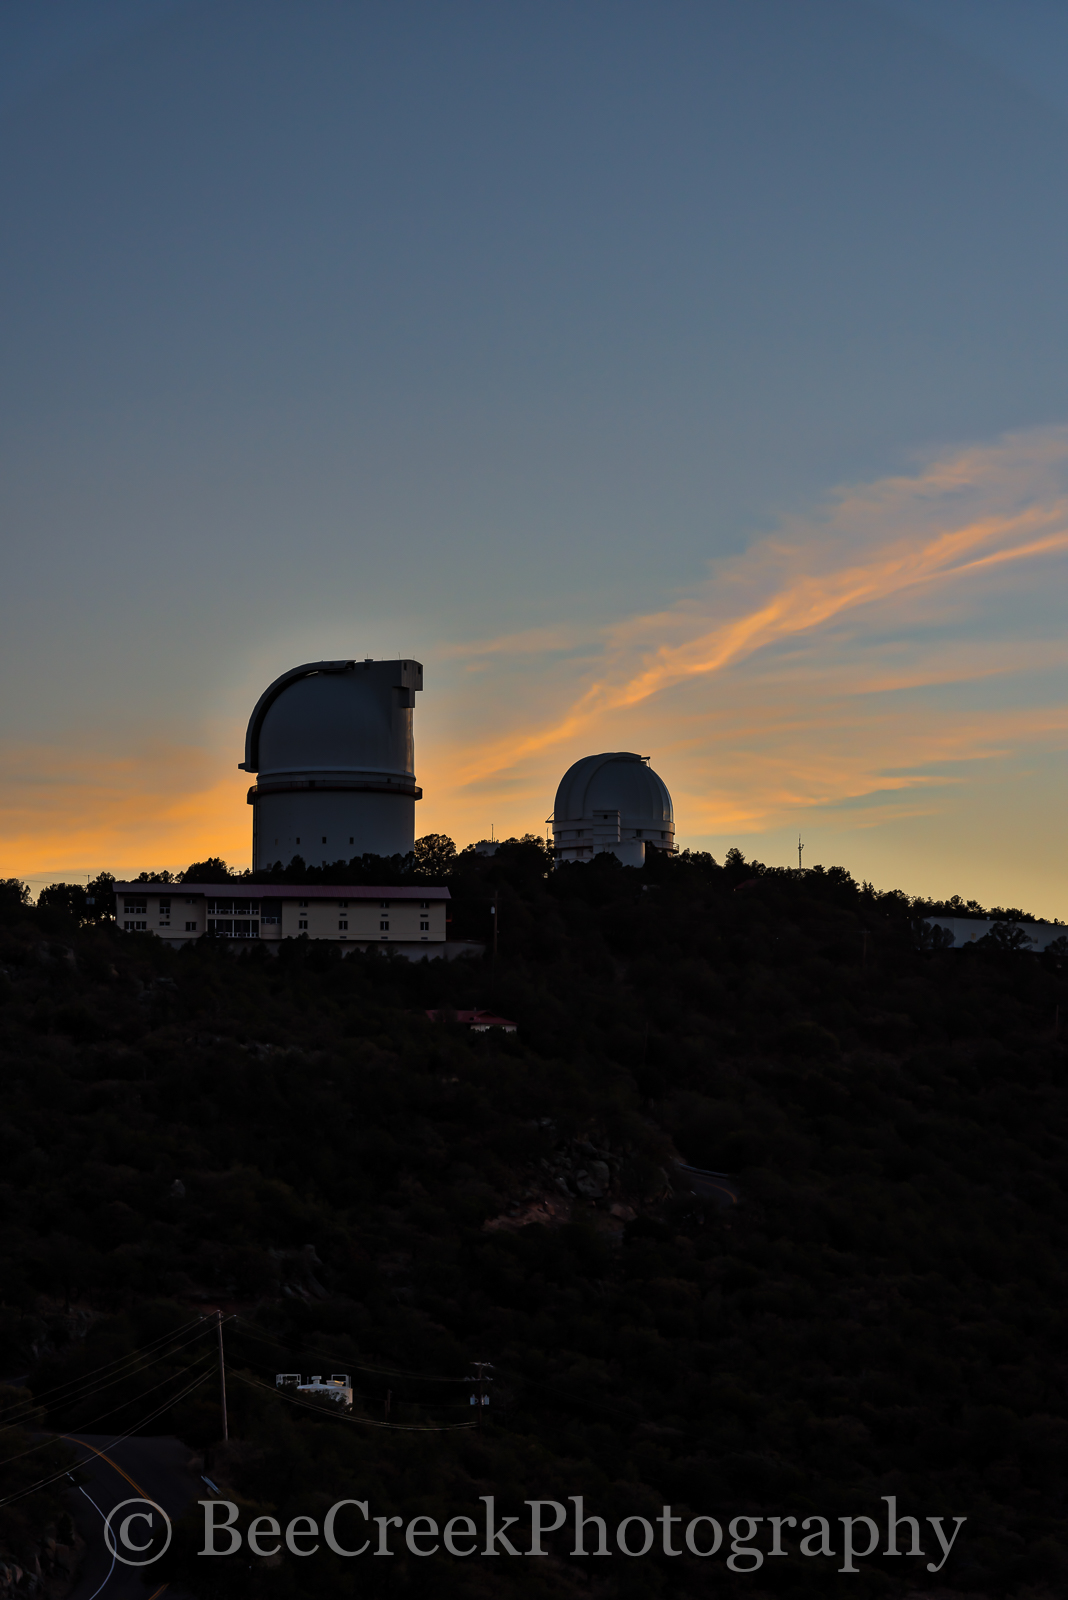 Davis mountains, Fort Davis, McDonald Observatory, colorful, glow, silouette., sunset, west texas, photo